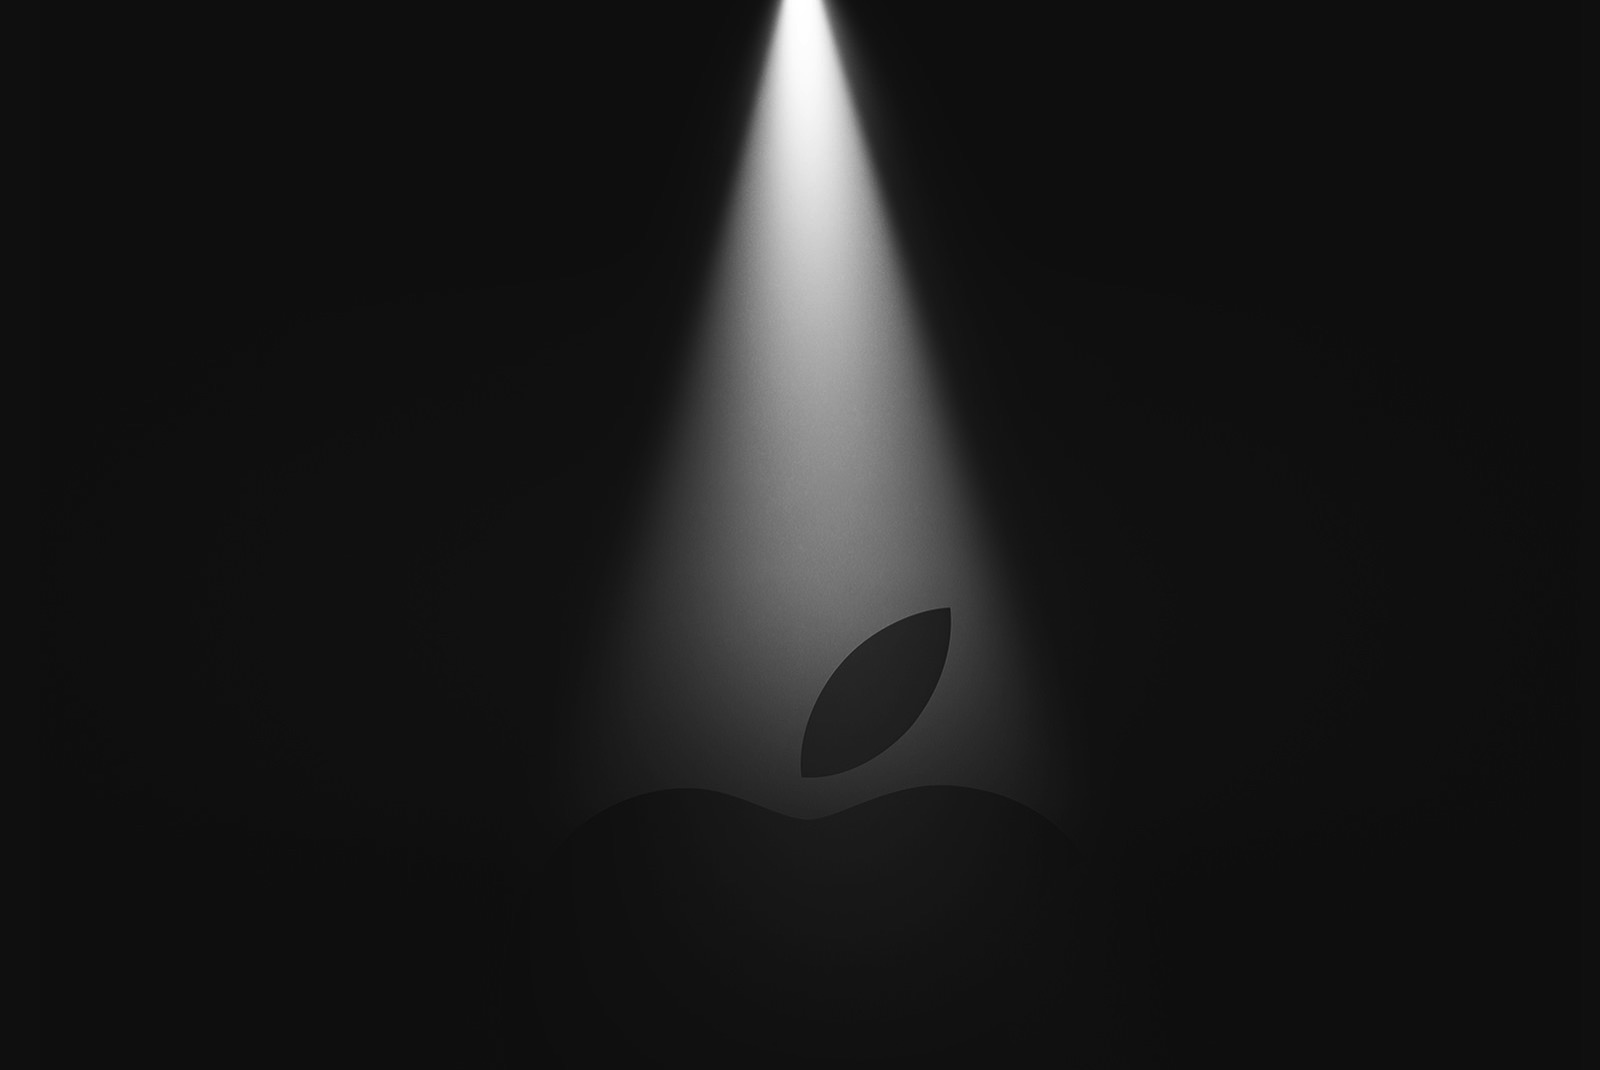 Apple 2019 March Event